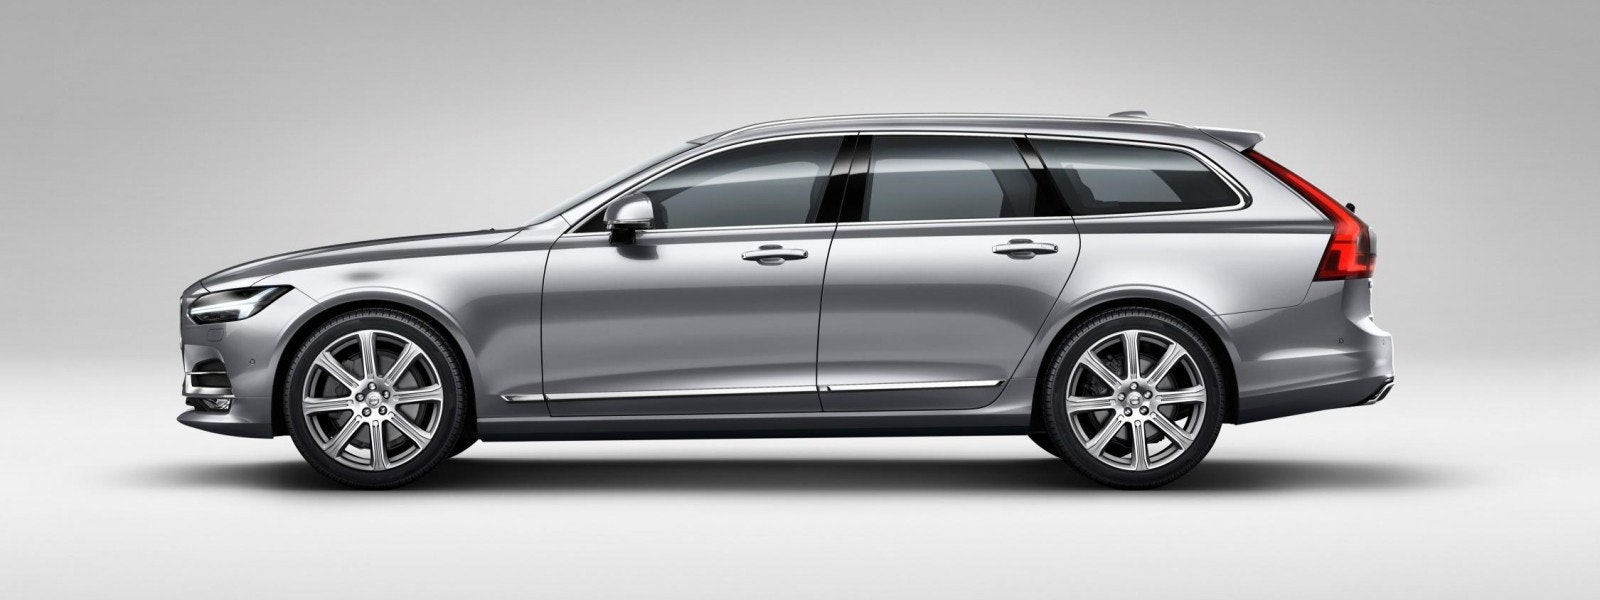 Volvo s90 weight